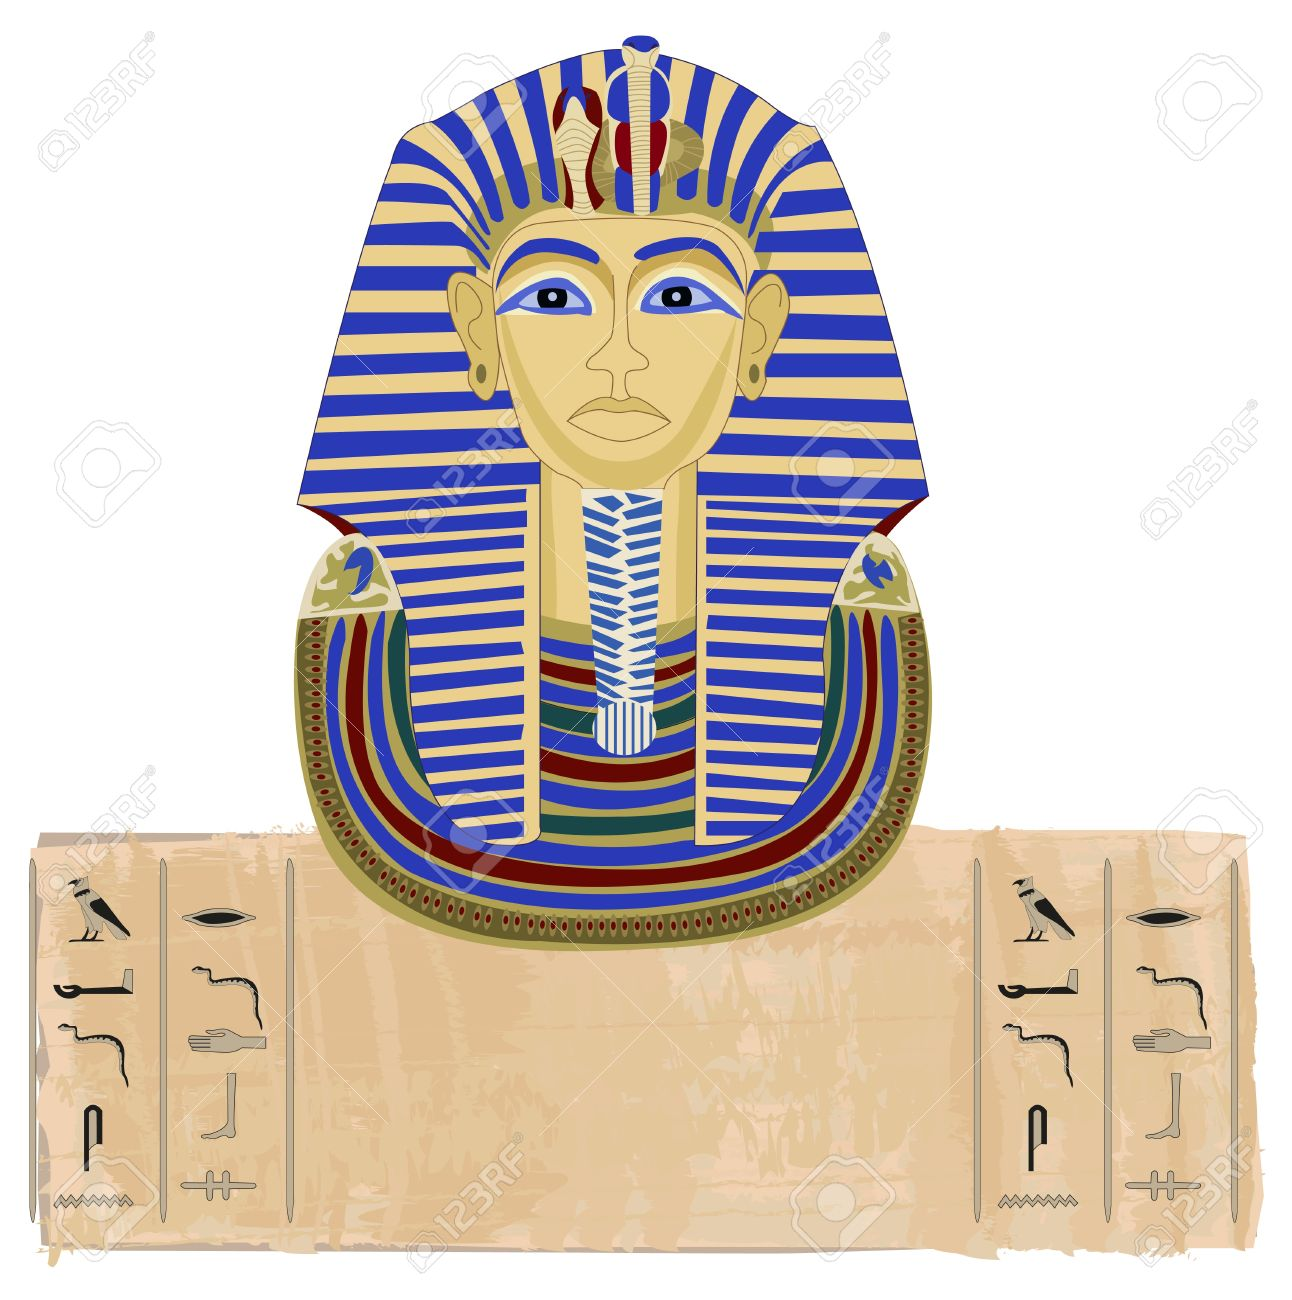 114 egyptian eagle cliparts stock vector and royalty free